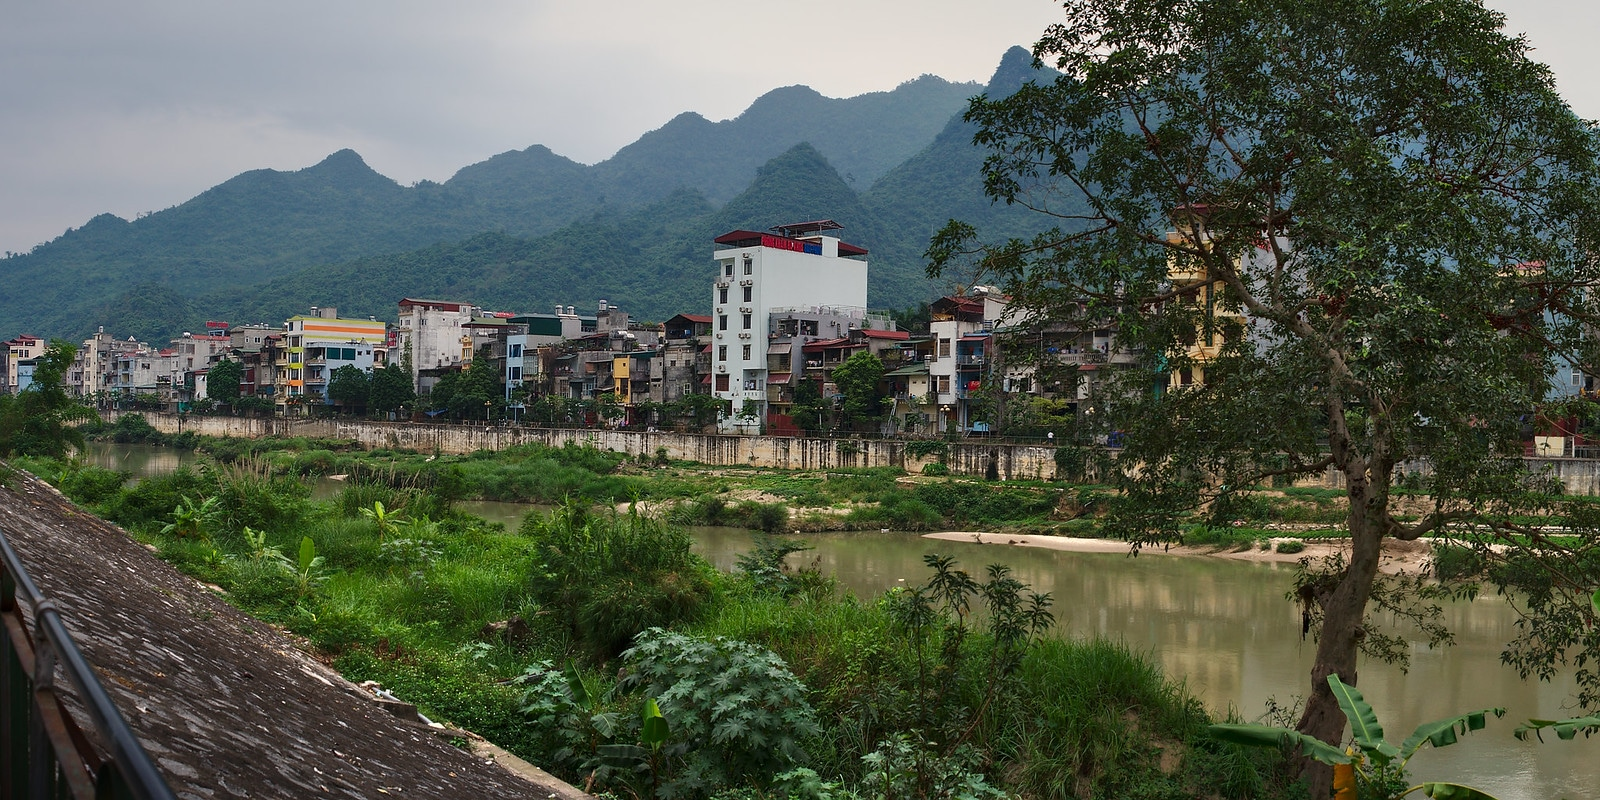 Ha Giang City in the Ha Giang Province Vietnam